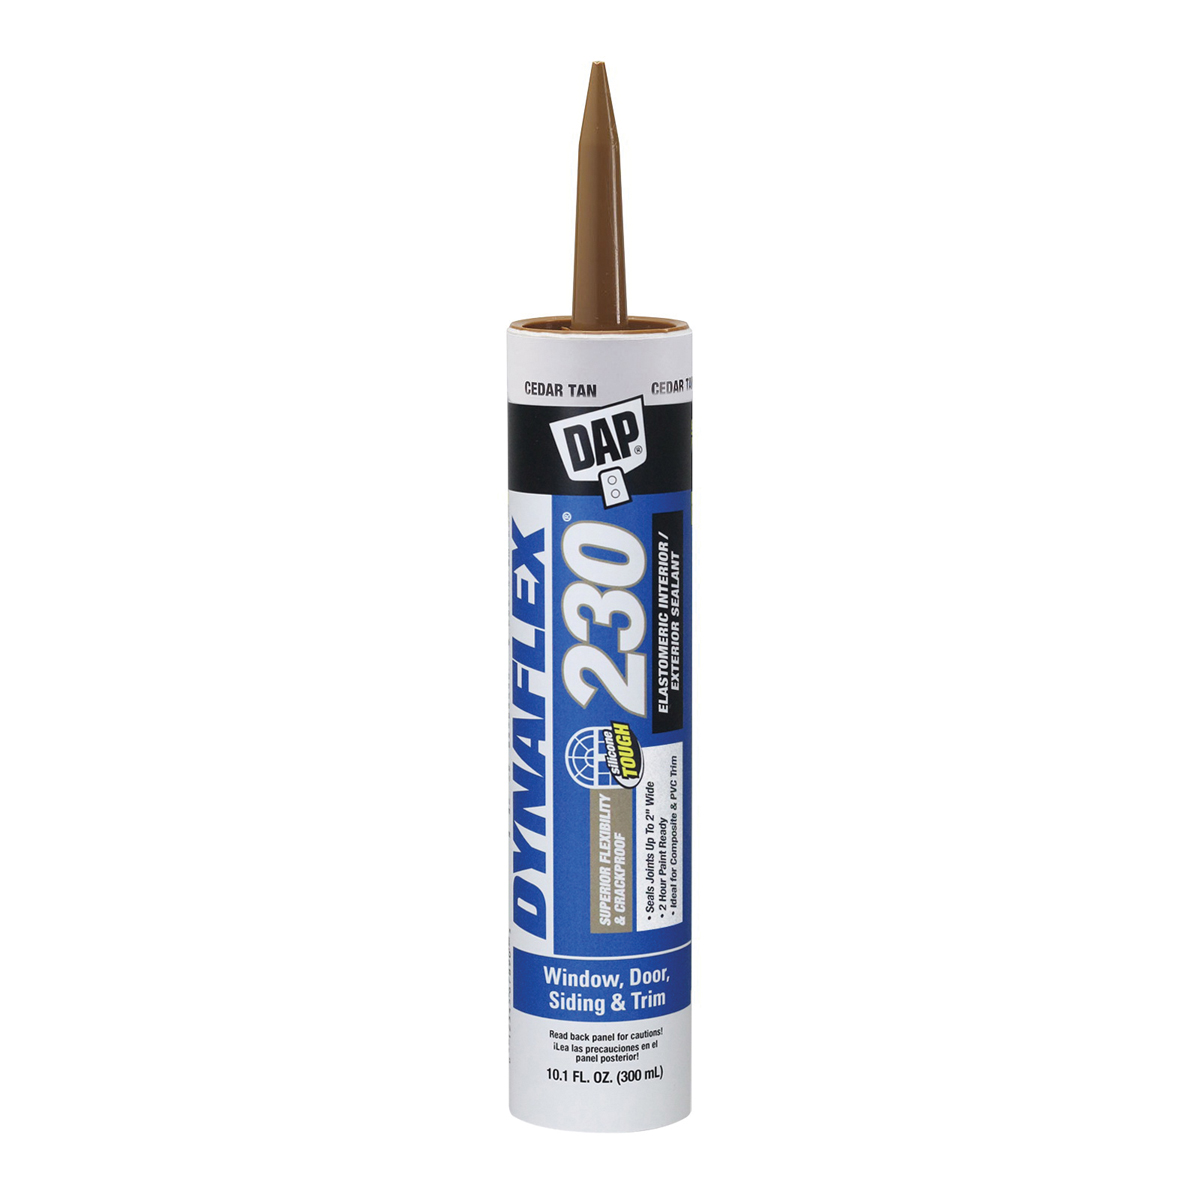 Picture of DAP 18304 Premium Sealant, Clear, 1 day Curing, 40 to 100 deg F, 10.1 oz Package, Cartridge